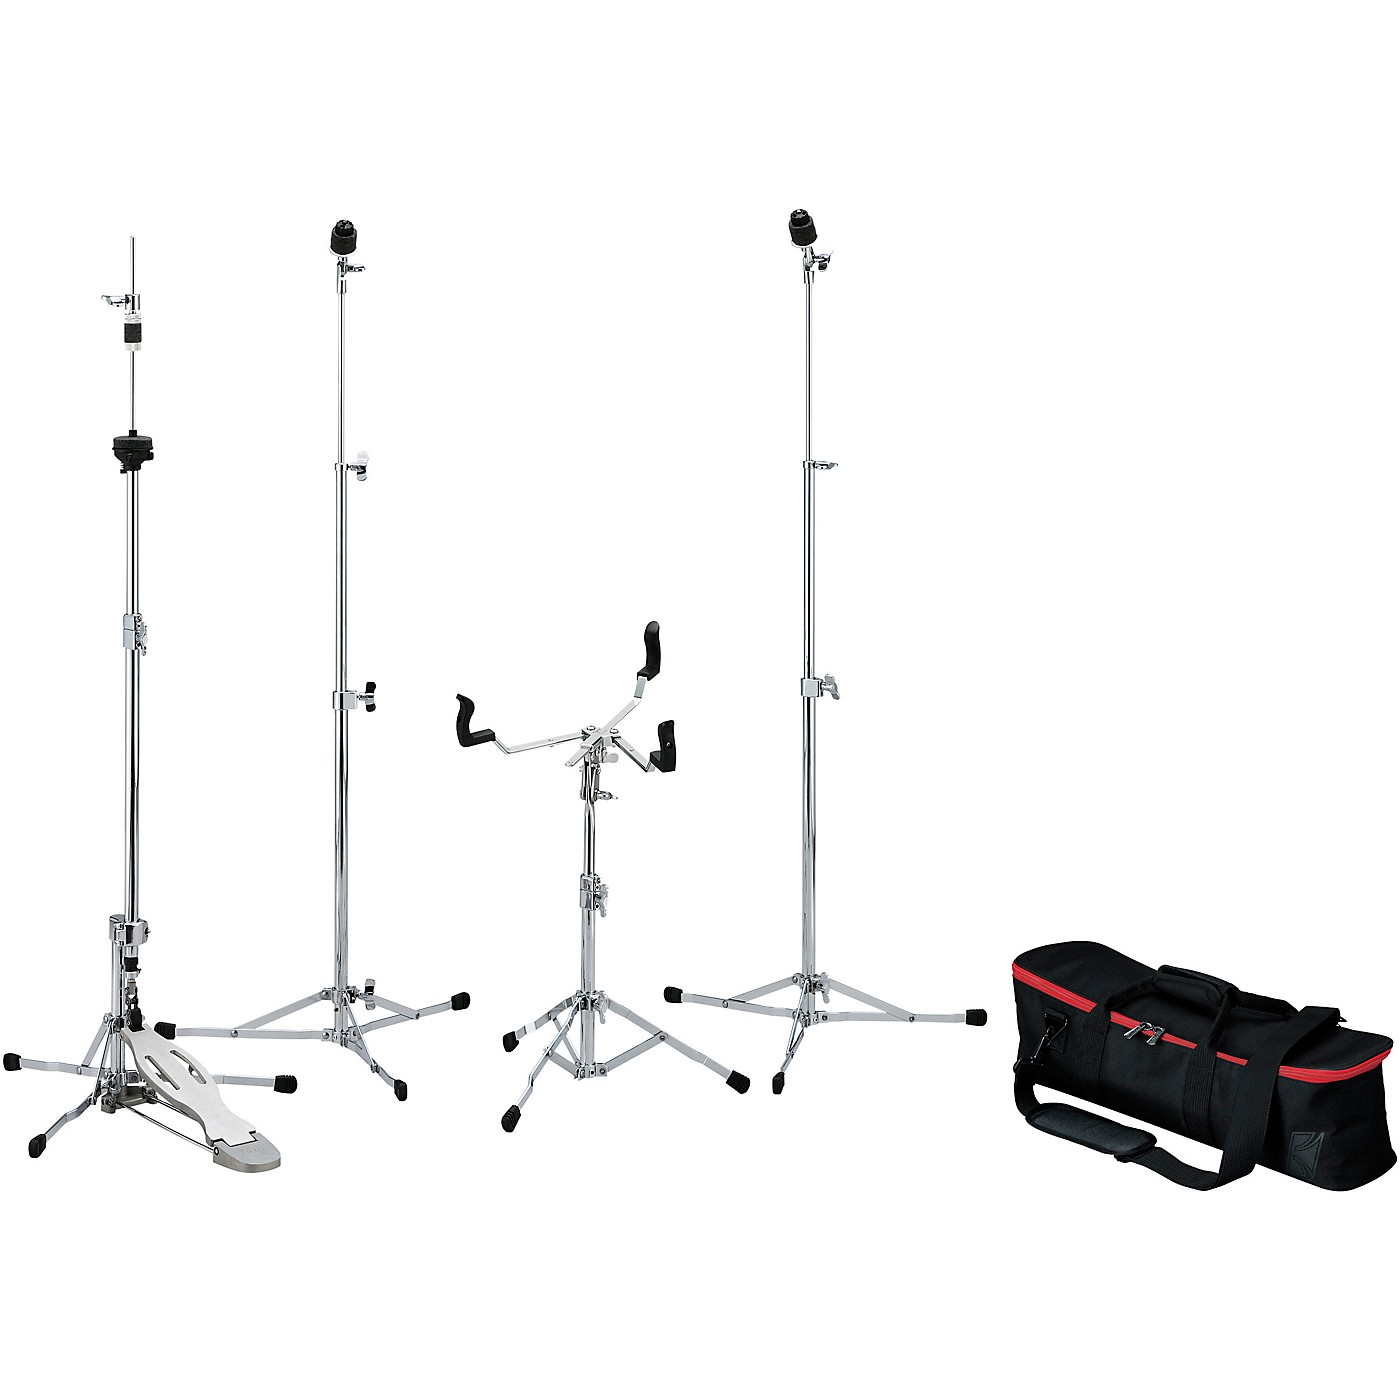 TAMA The Classic Series Hardware 4-piece Hardware Pack with Carrying Bag thumbnail